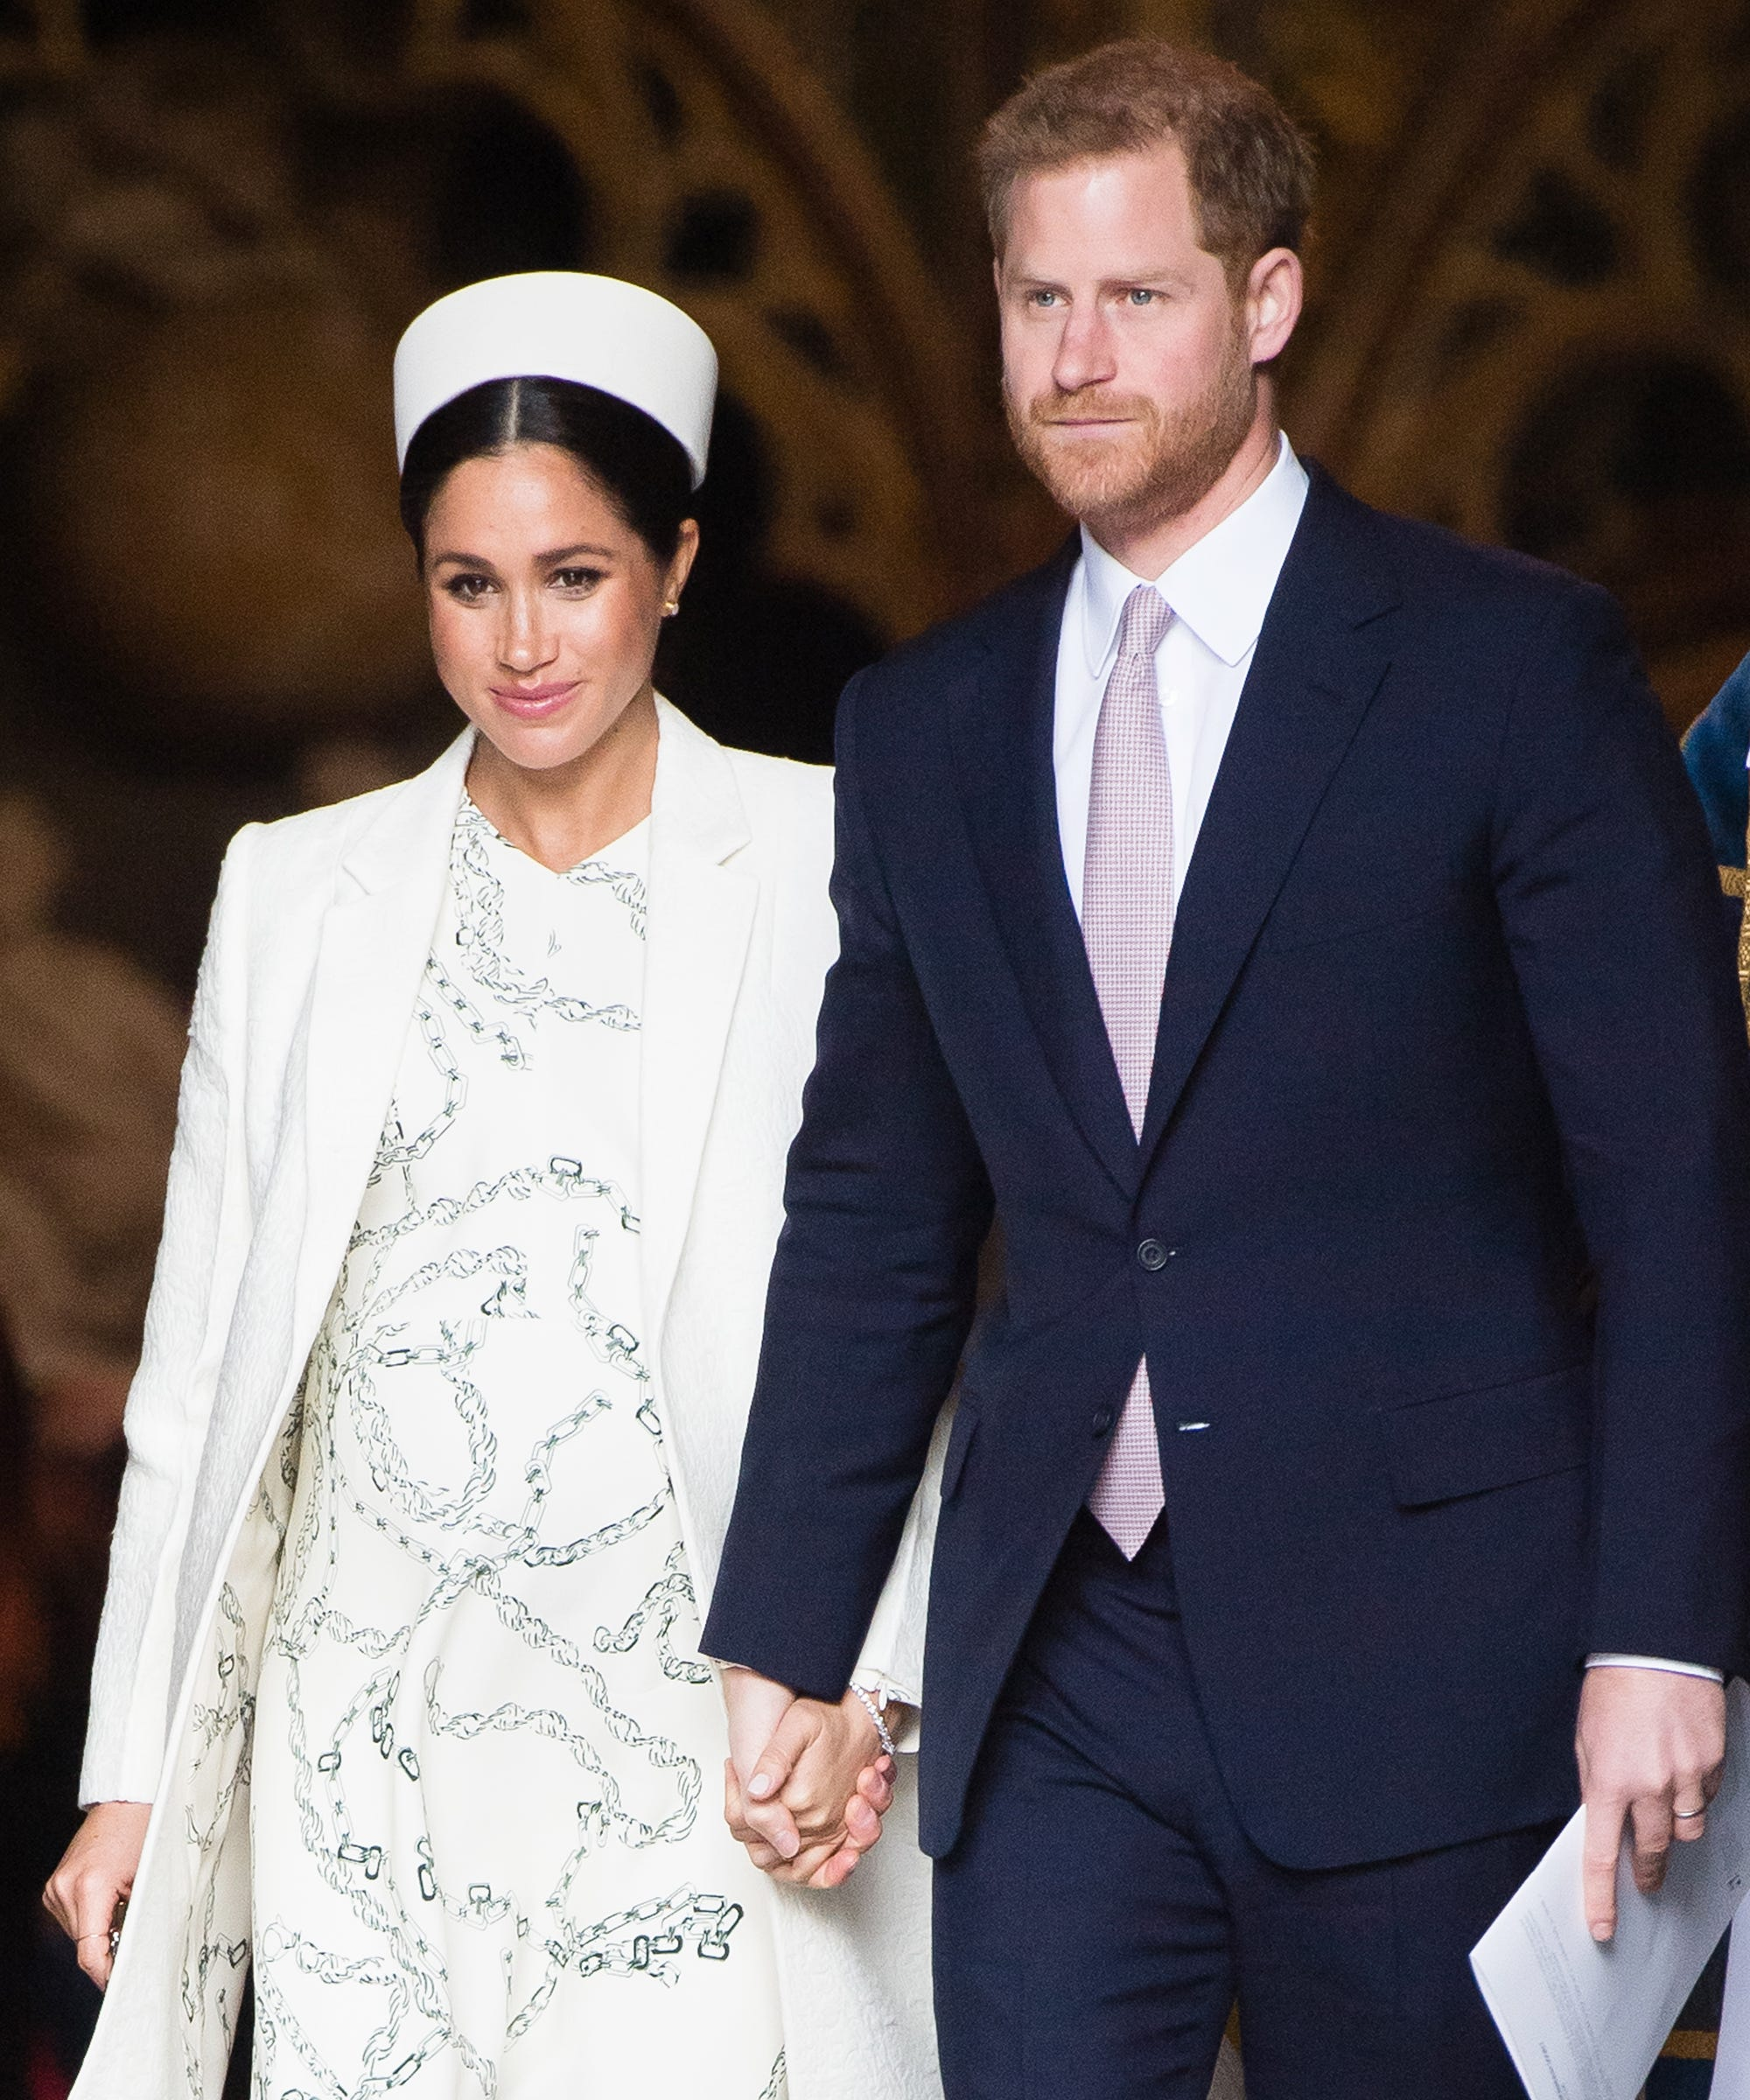 Like Most Millennial Men, Prince Harry Apparently Wants To Take Paternity Leave